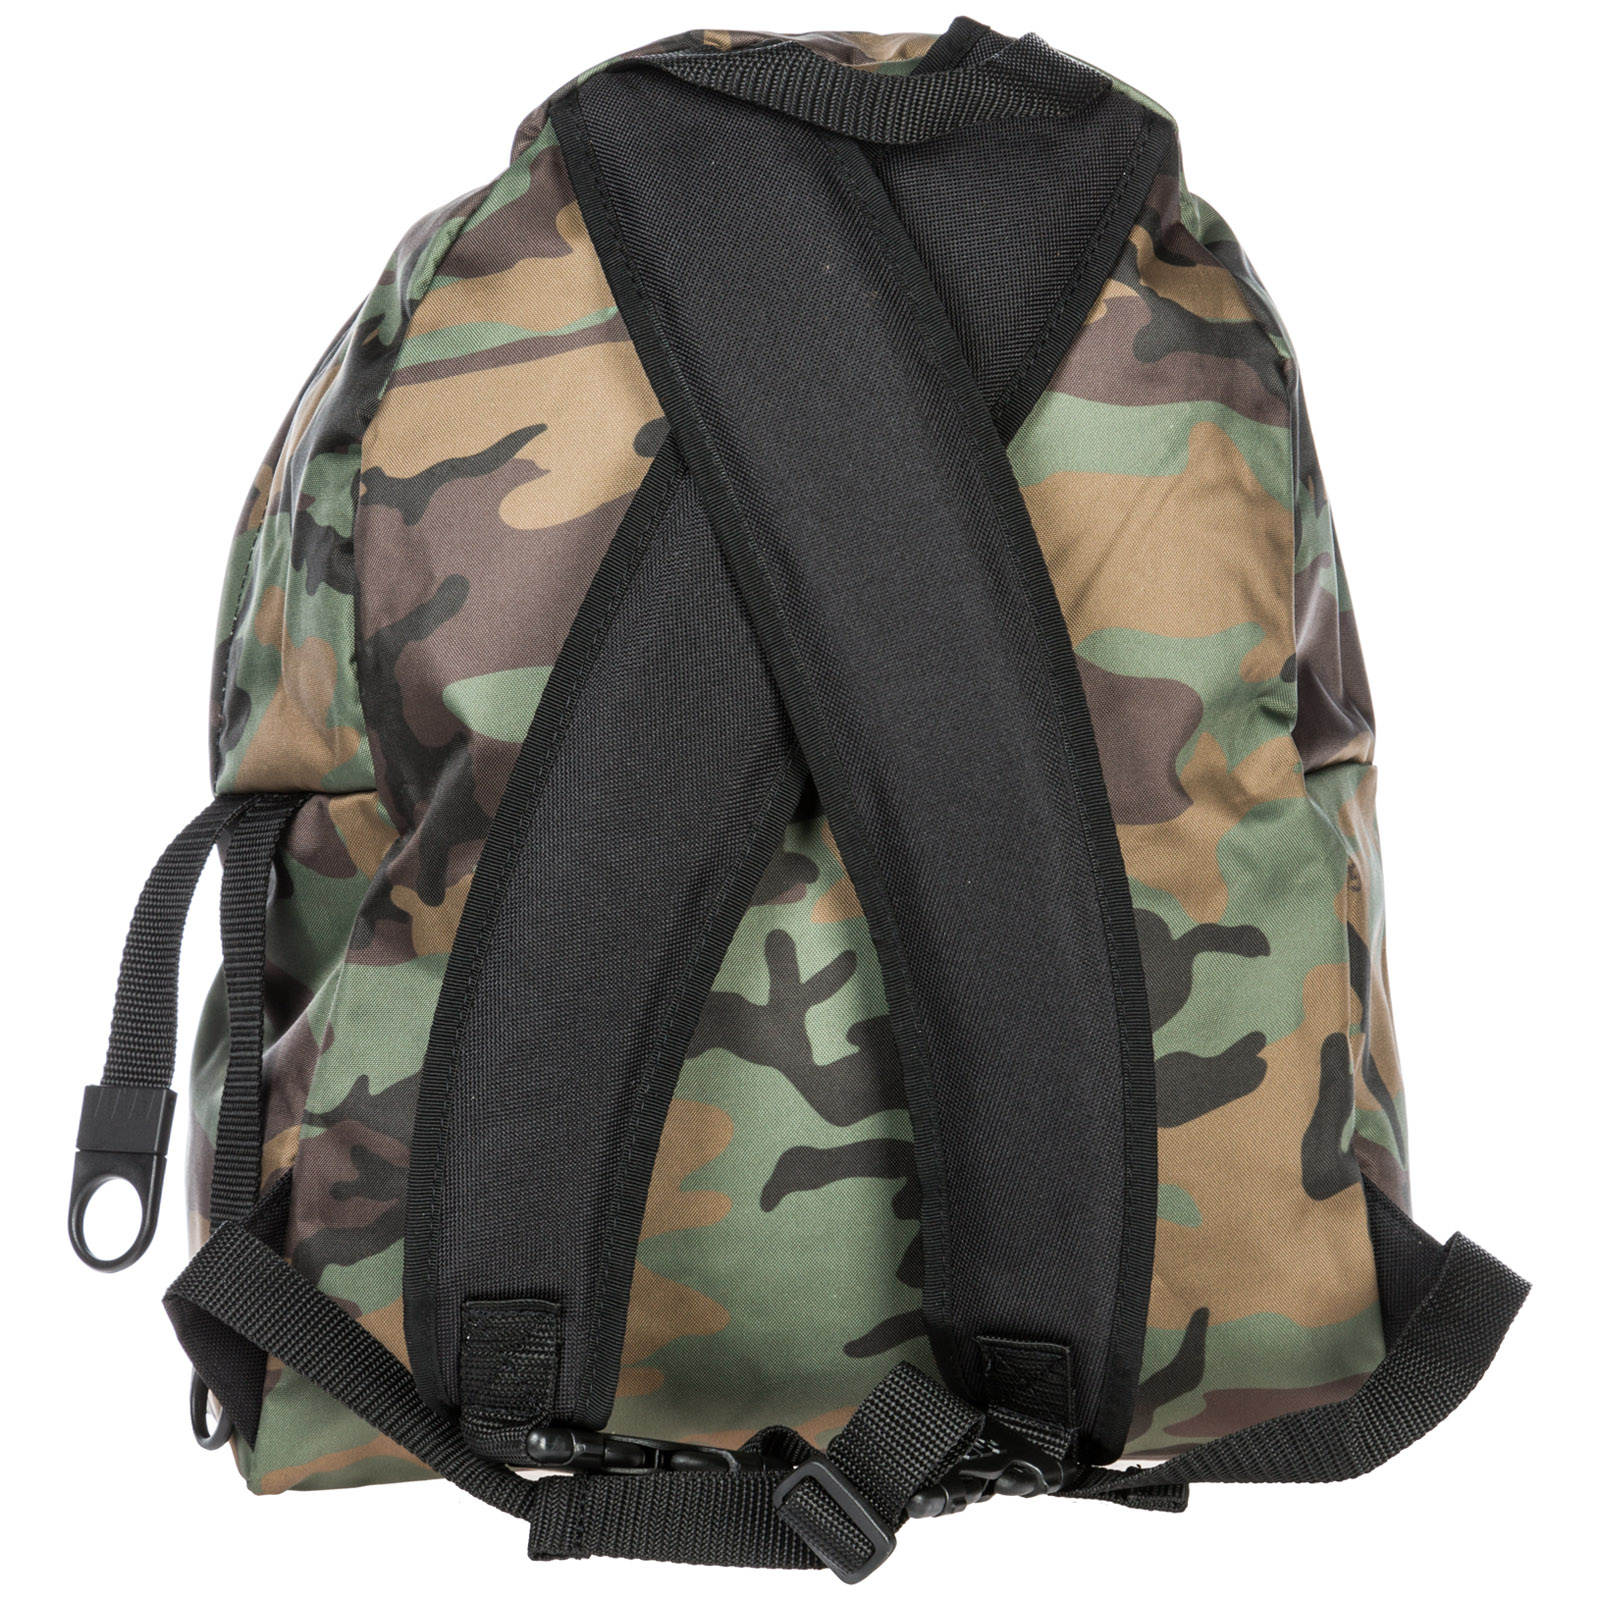 Men's rucksack backpack travel